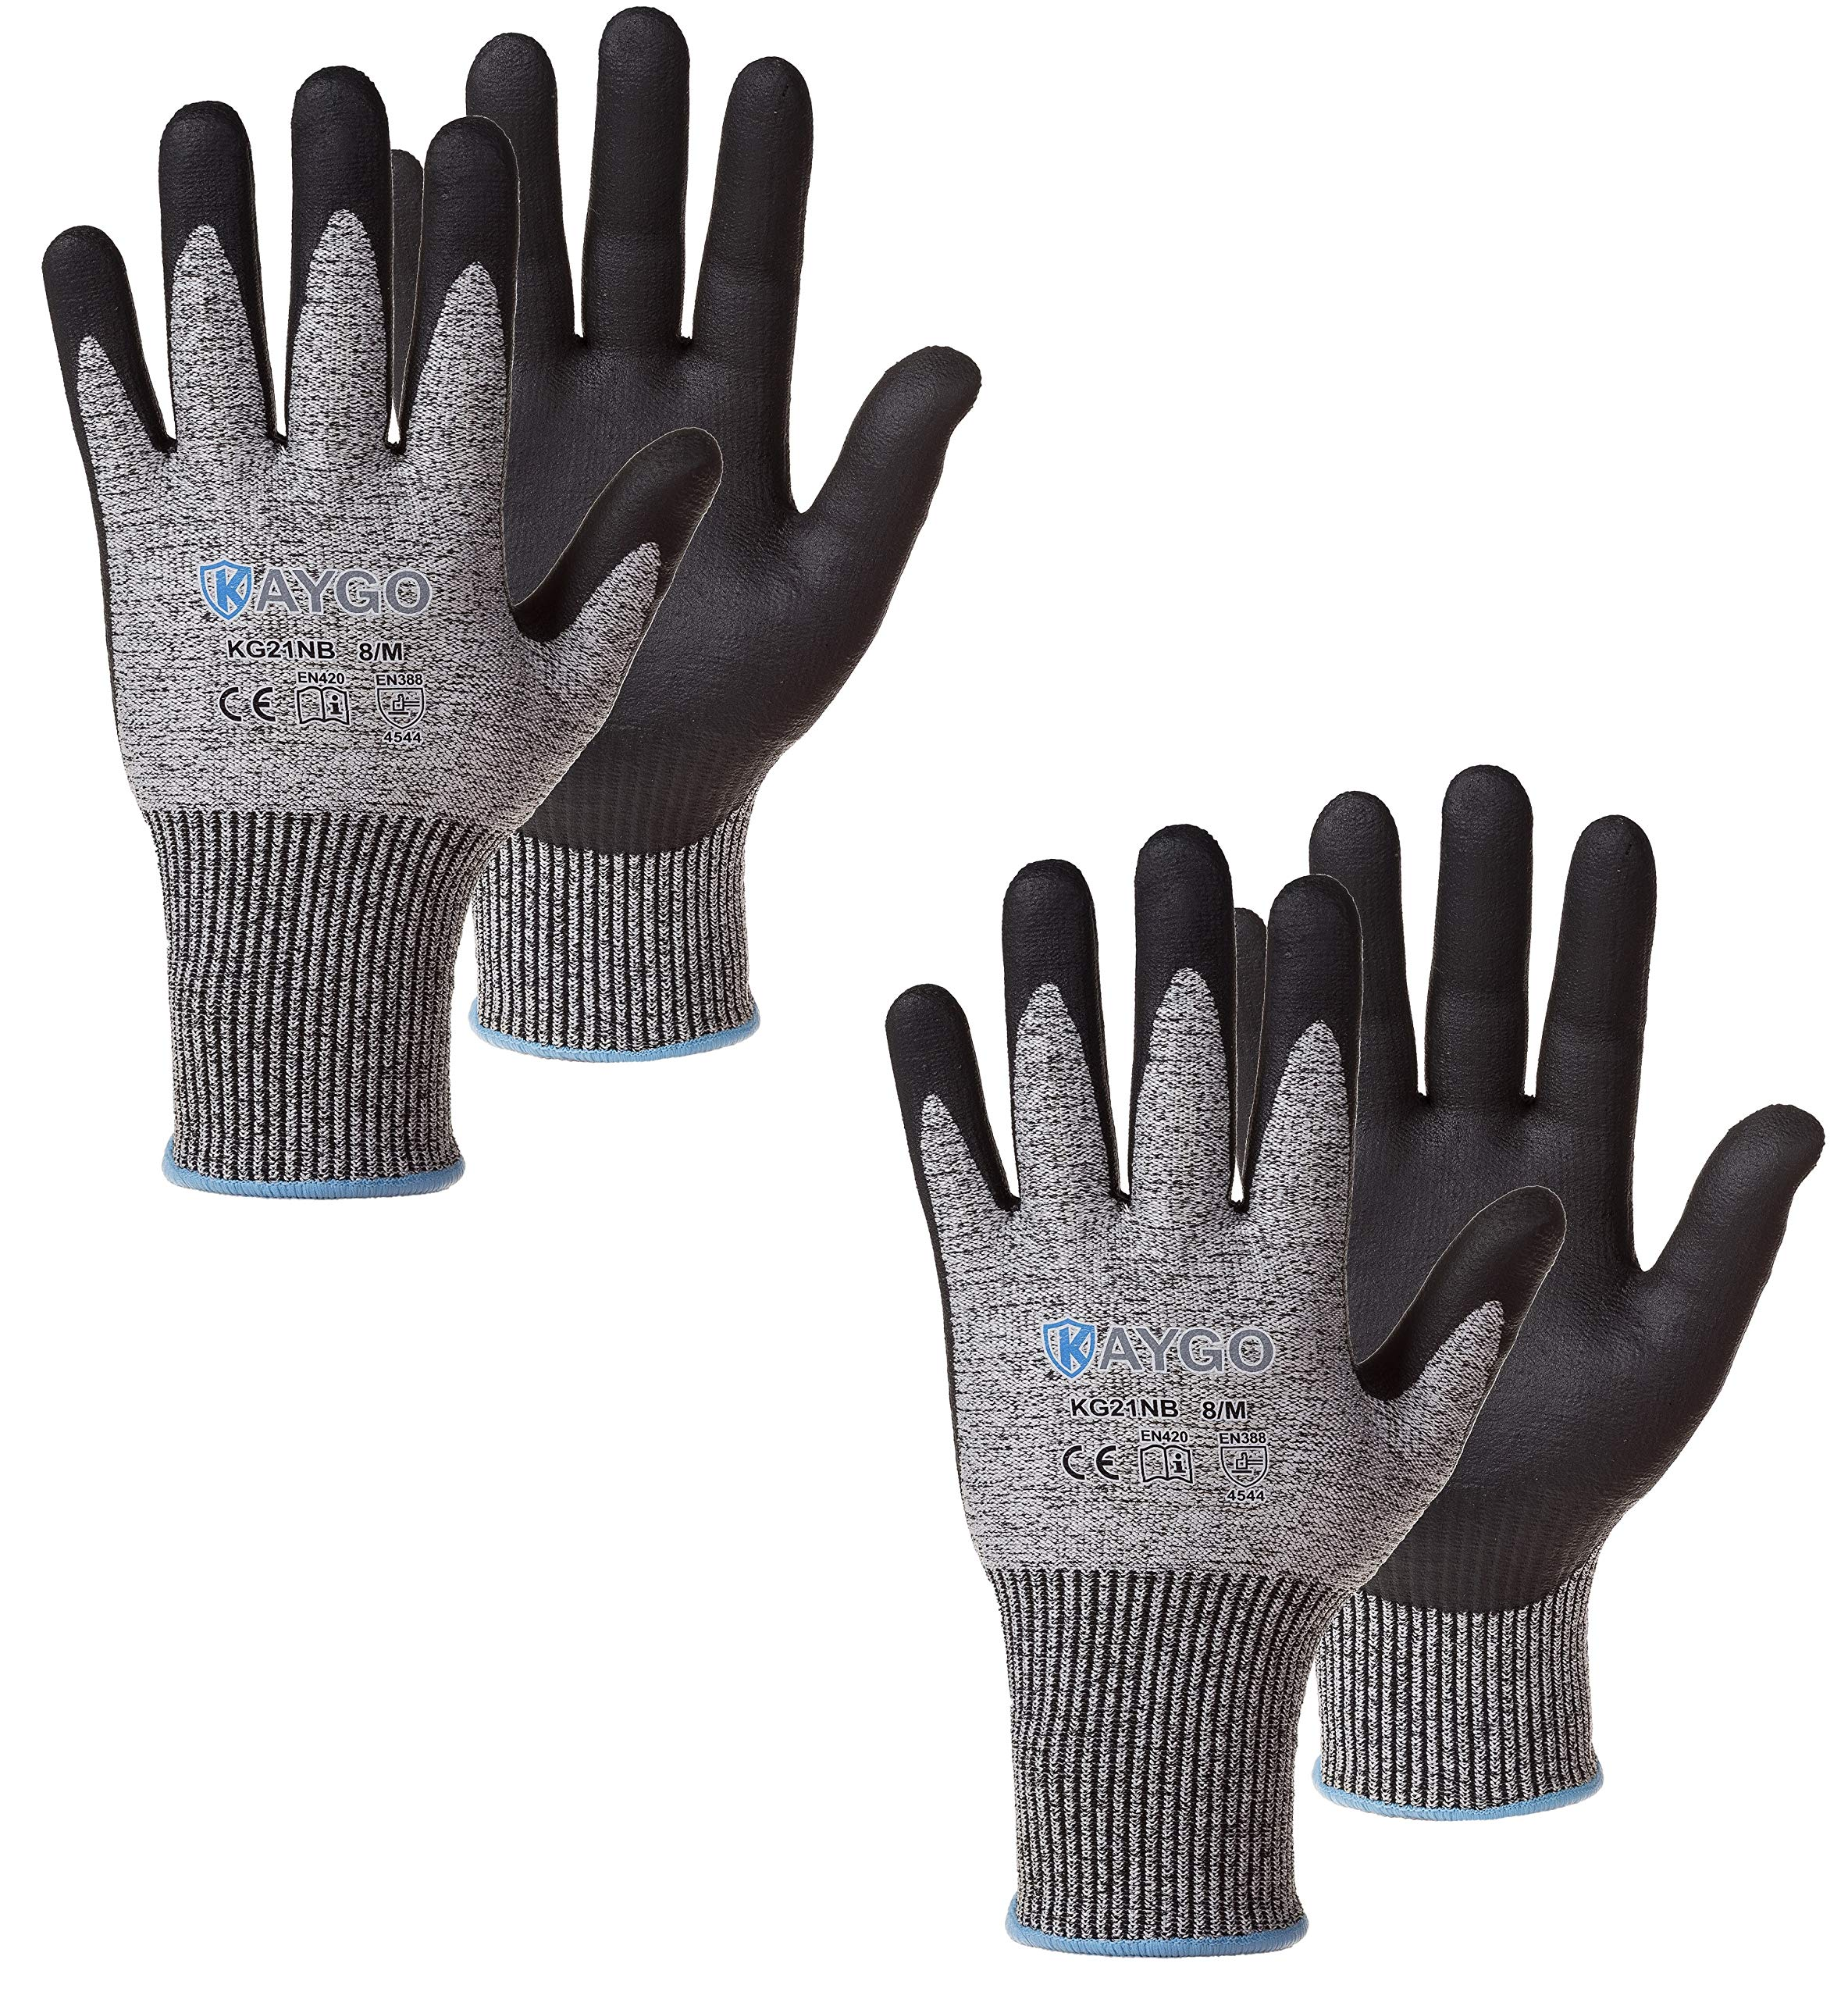 Cut Resistant Work Gloves MicroFoam Nitrile Coated-2 Pairs,KAYGO KG21NB, High Cut Level 5,Superior GRIP Performance,Wrapped for Vending,Ideal for General Duty Work